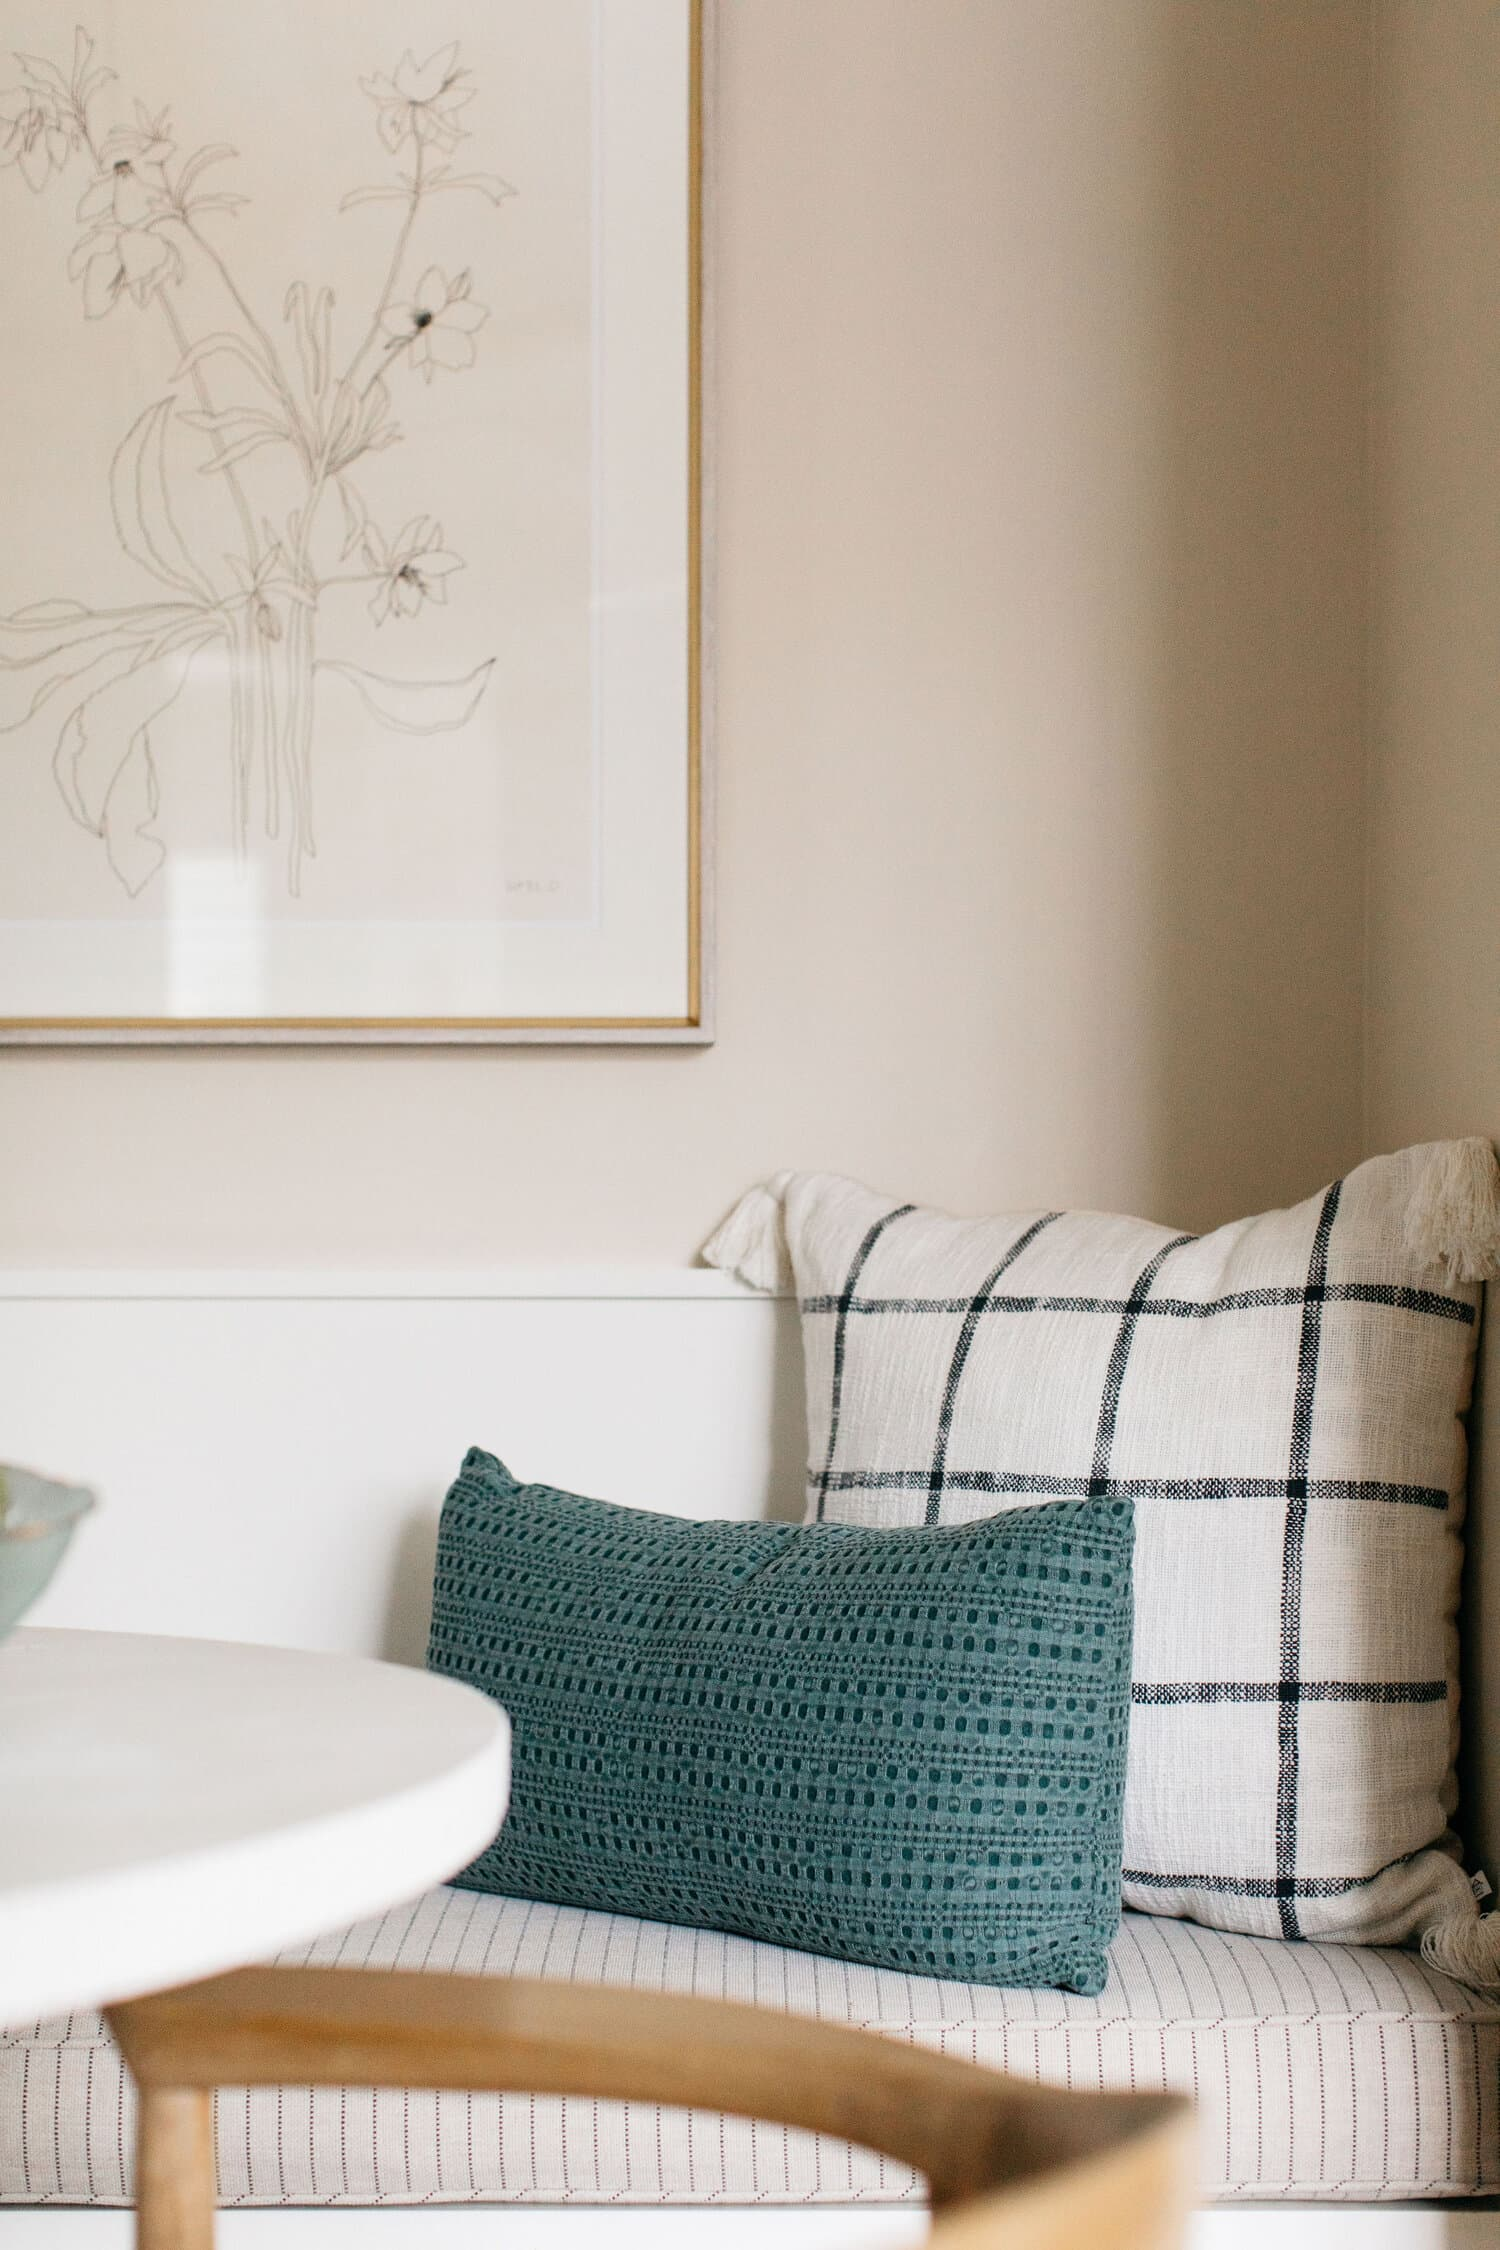 this is a breakfast nook with a pale cream shade inspired by spring